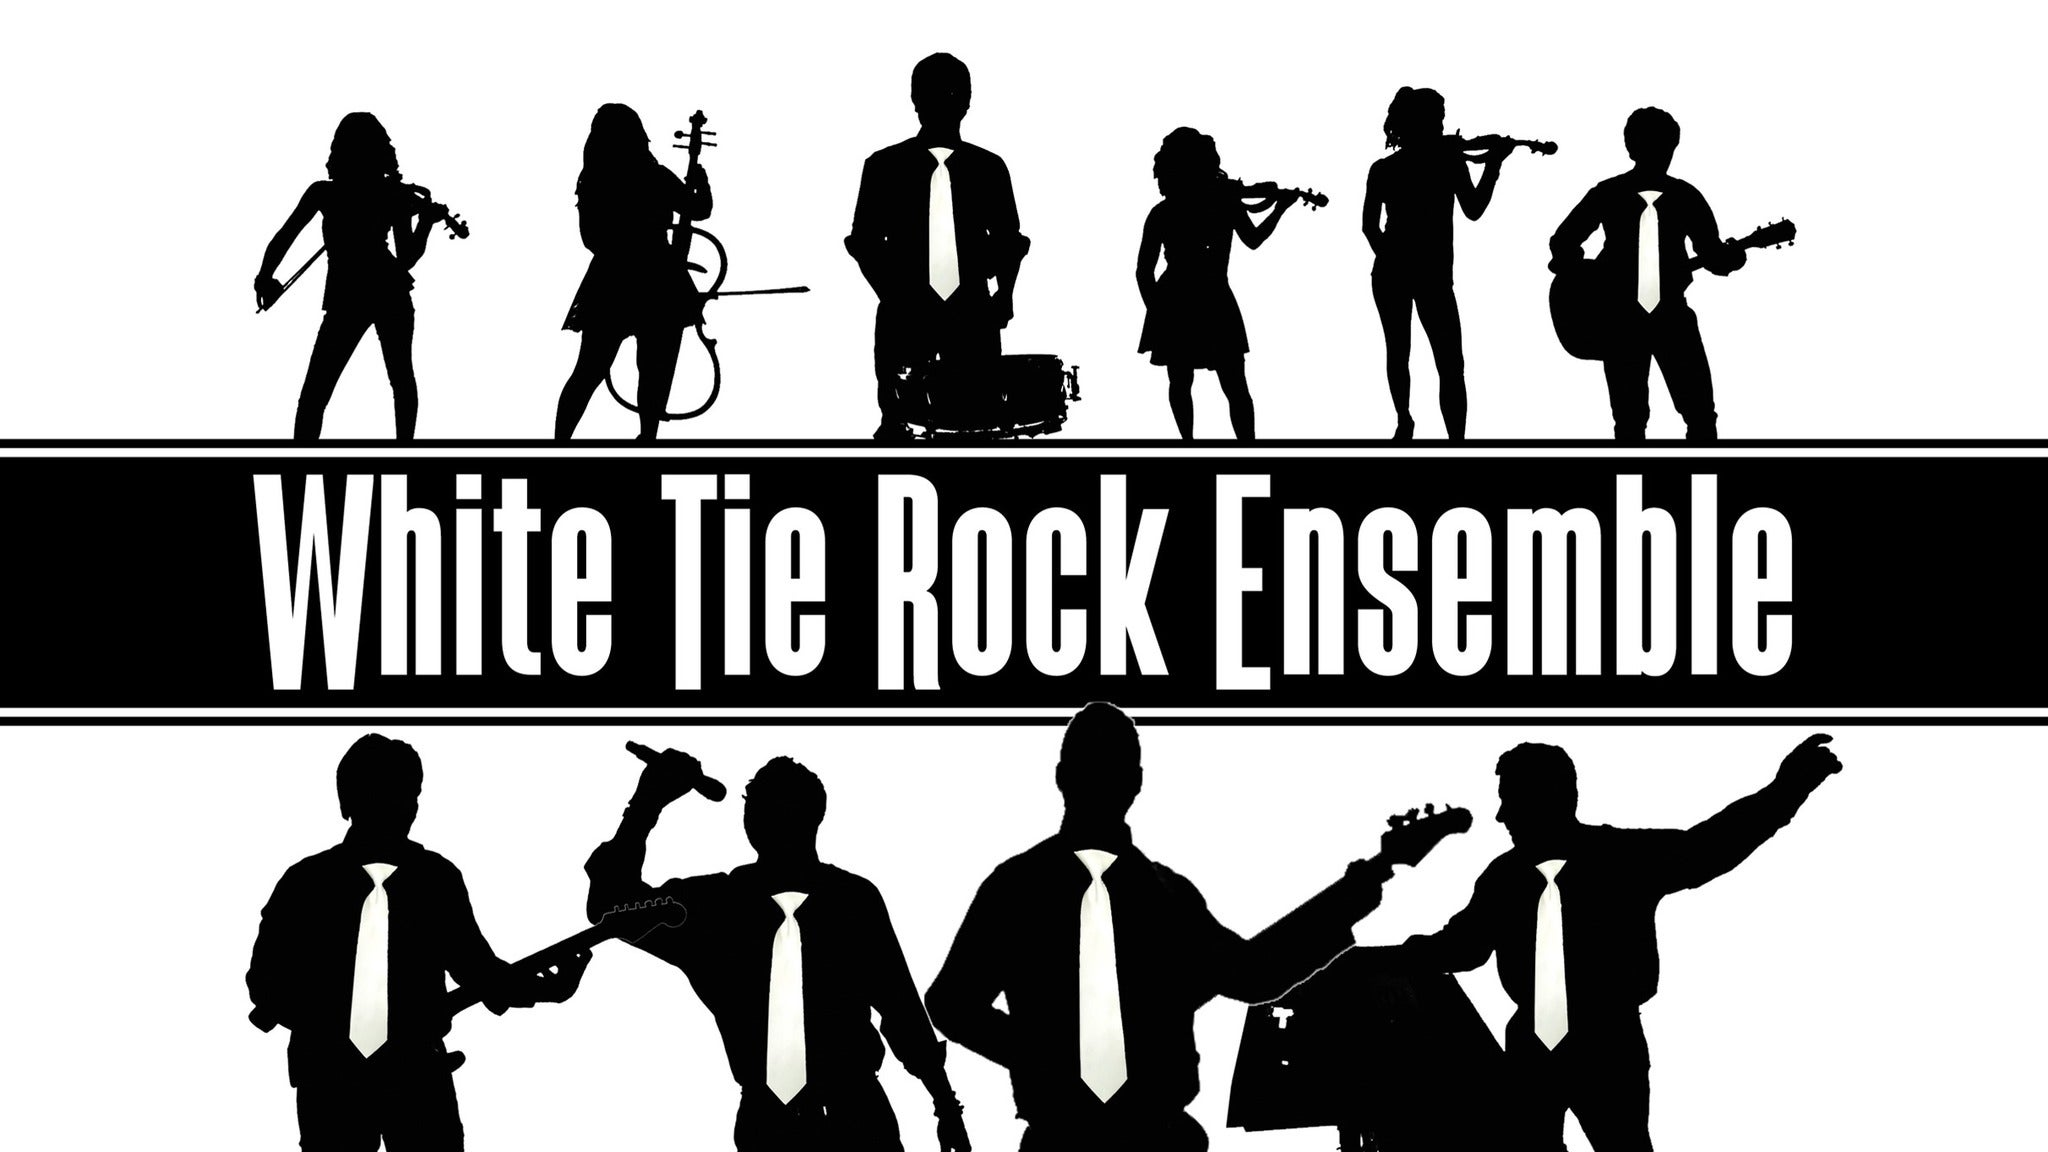 White Tie Rock Ensemble: Dark Side of the Moon